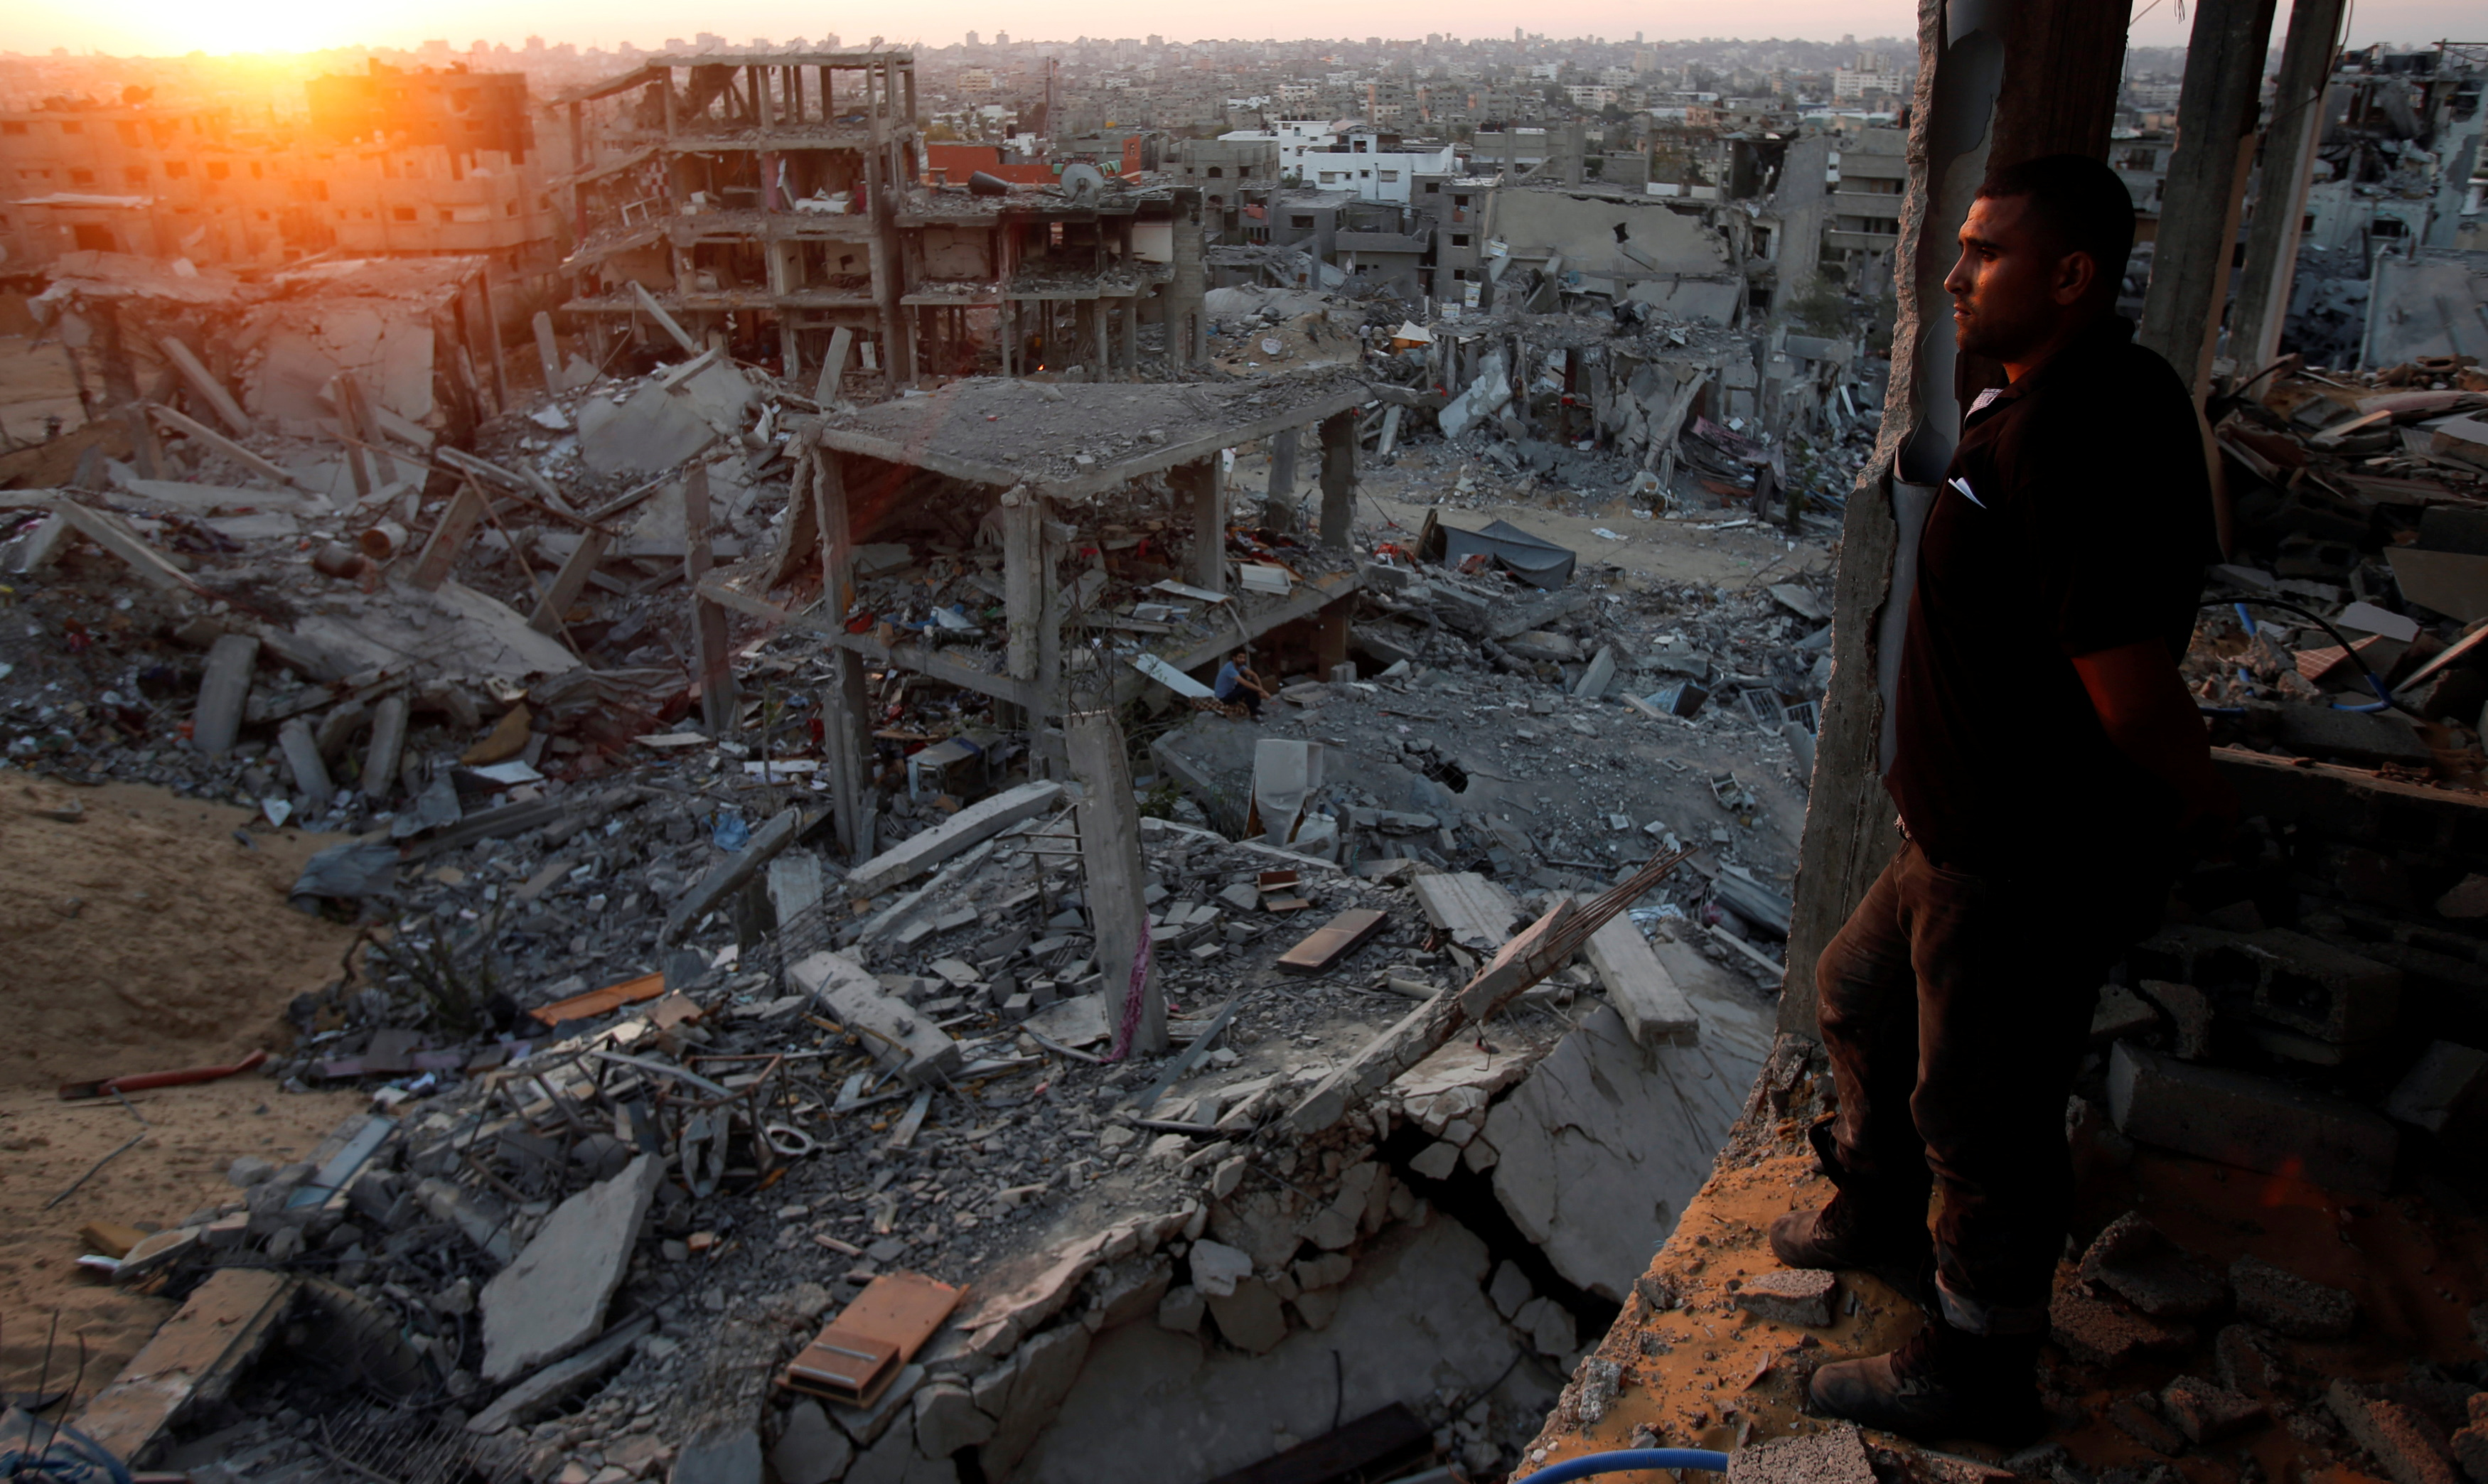 A Palestinian man looks out of his heavily damaged house at neighbouring houses which witnesses said were destroyed during the Israeli offensive, in the east of Gaza City September 3, 2014.   REUTERS/Suhaib Salem